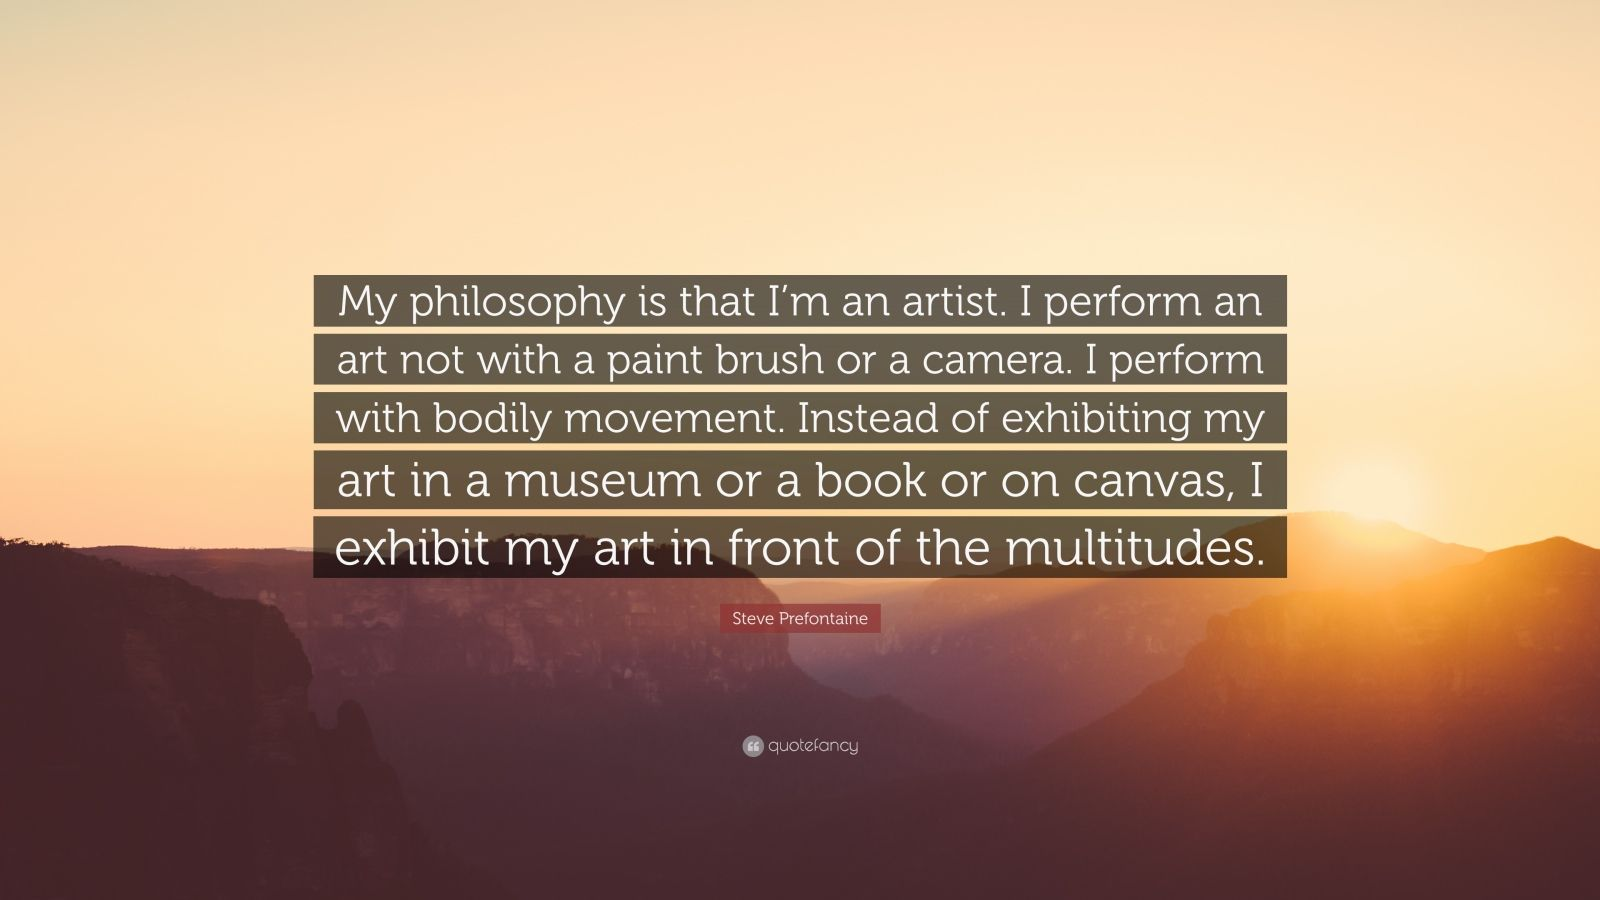 """Steve Prefontaine Quote: """"My philosophy is that I'm an artist. I perform an art not with a paint brush or a camera. I perform with bodily movement. Instead of exhibiting my art in a museum or a book or on canvas, I exhibit my art in front of the multitudes."""""""